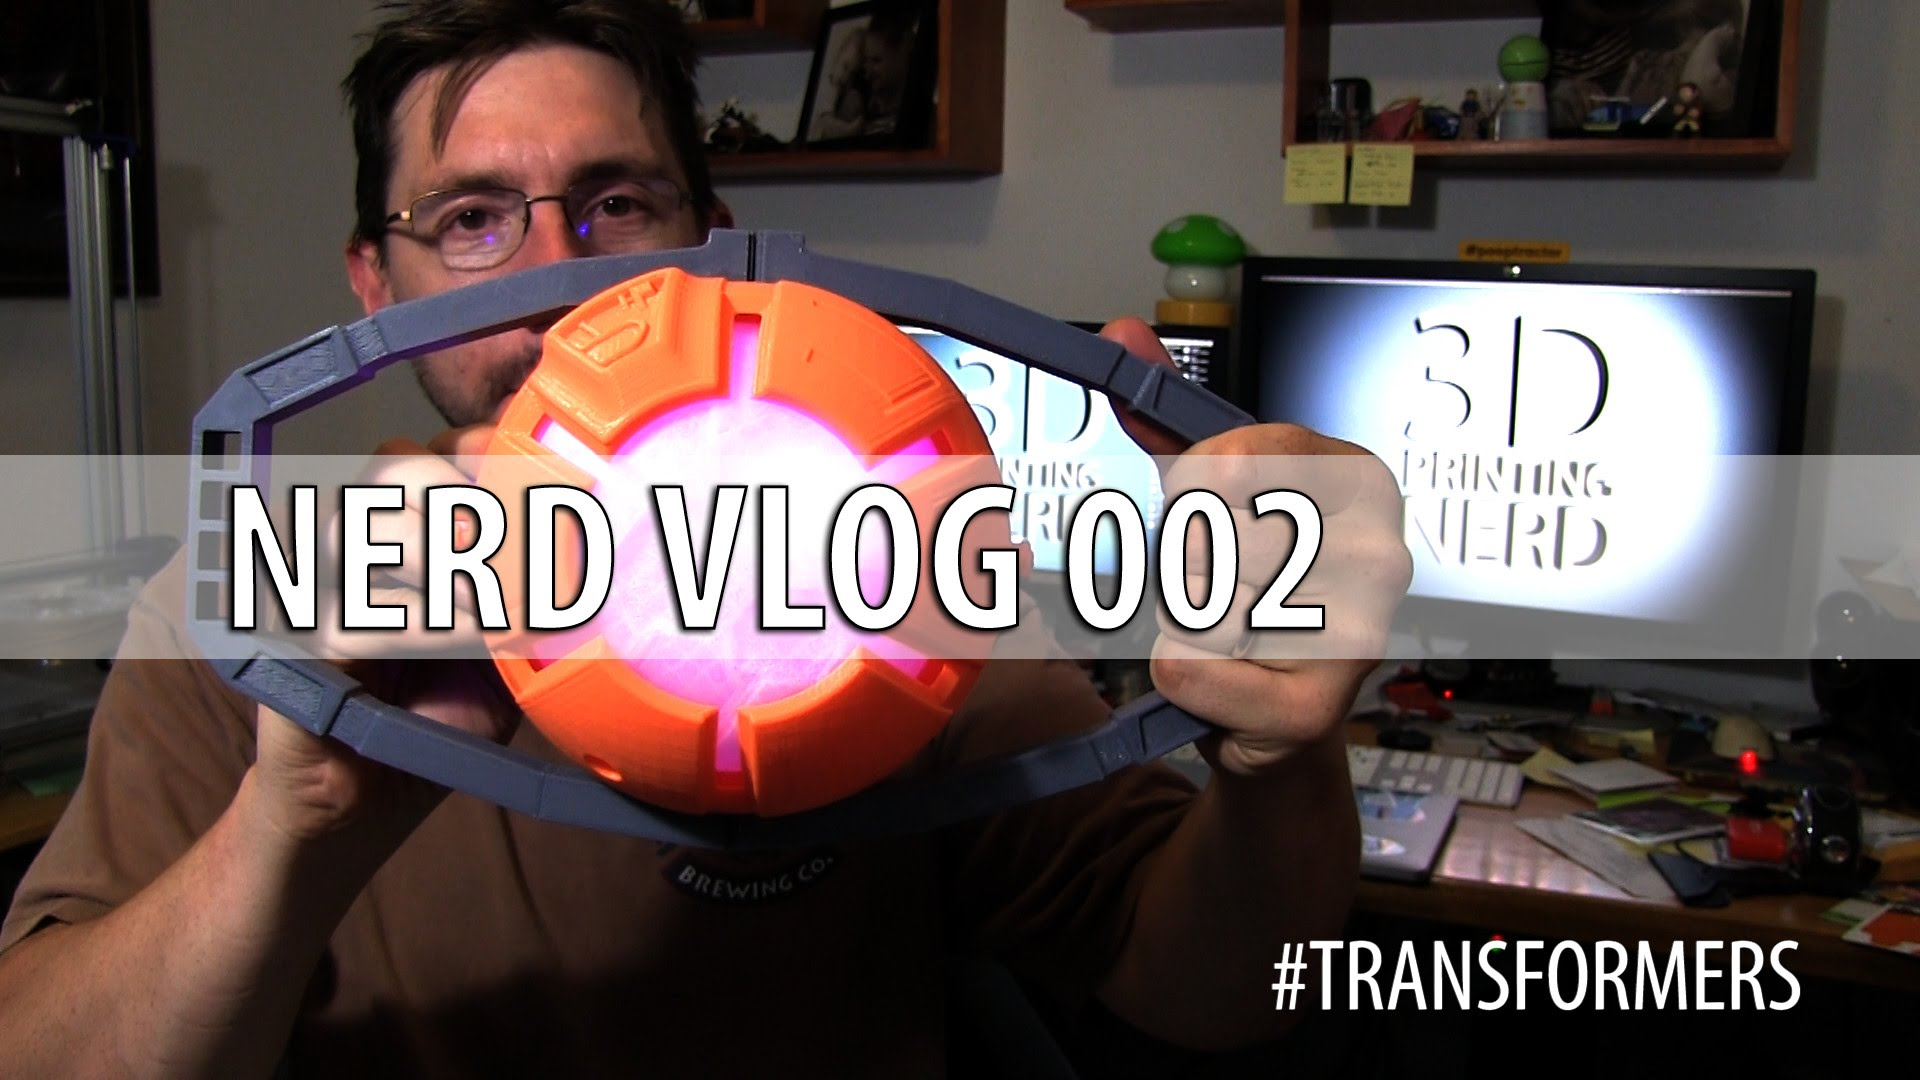 NerdHQ, Colorfabb, Transformers! Nerd Vlog 002